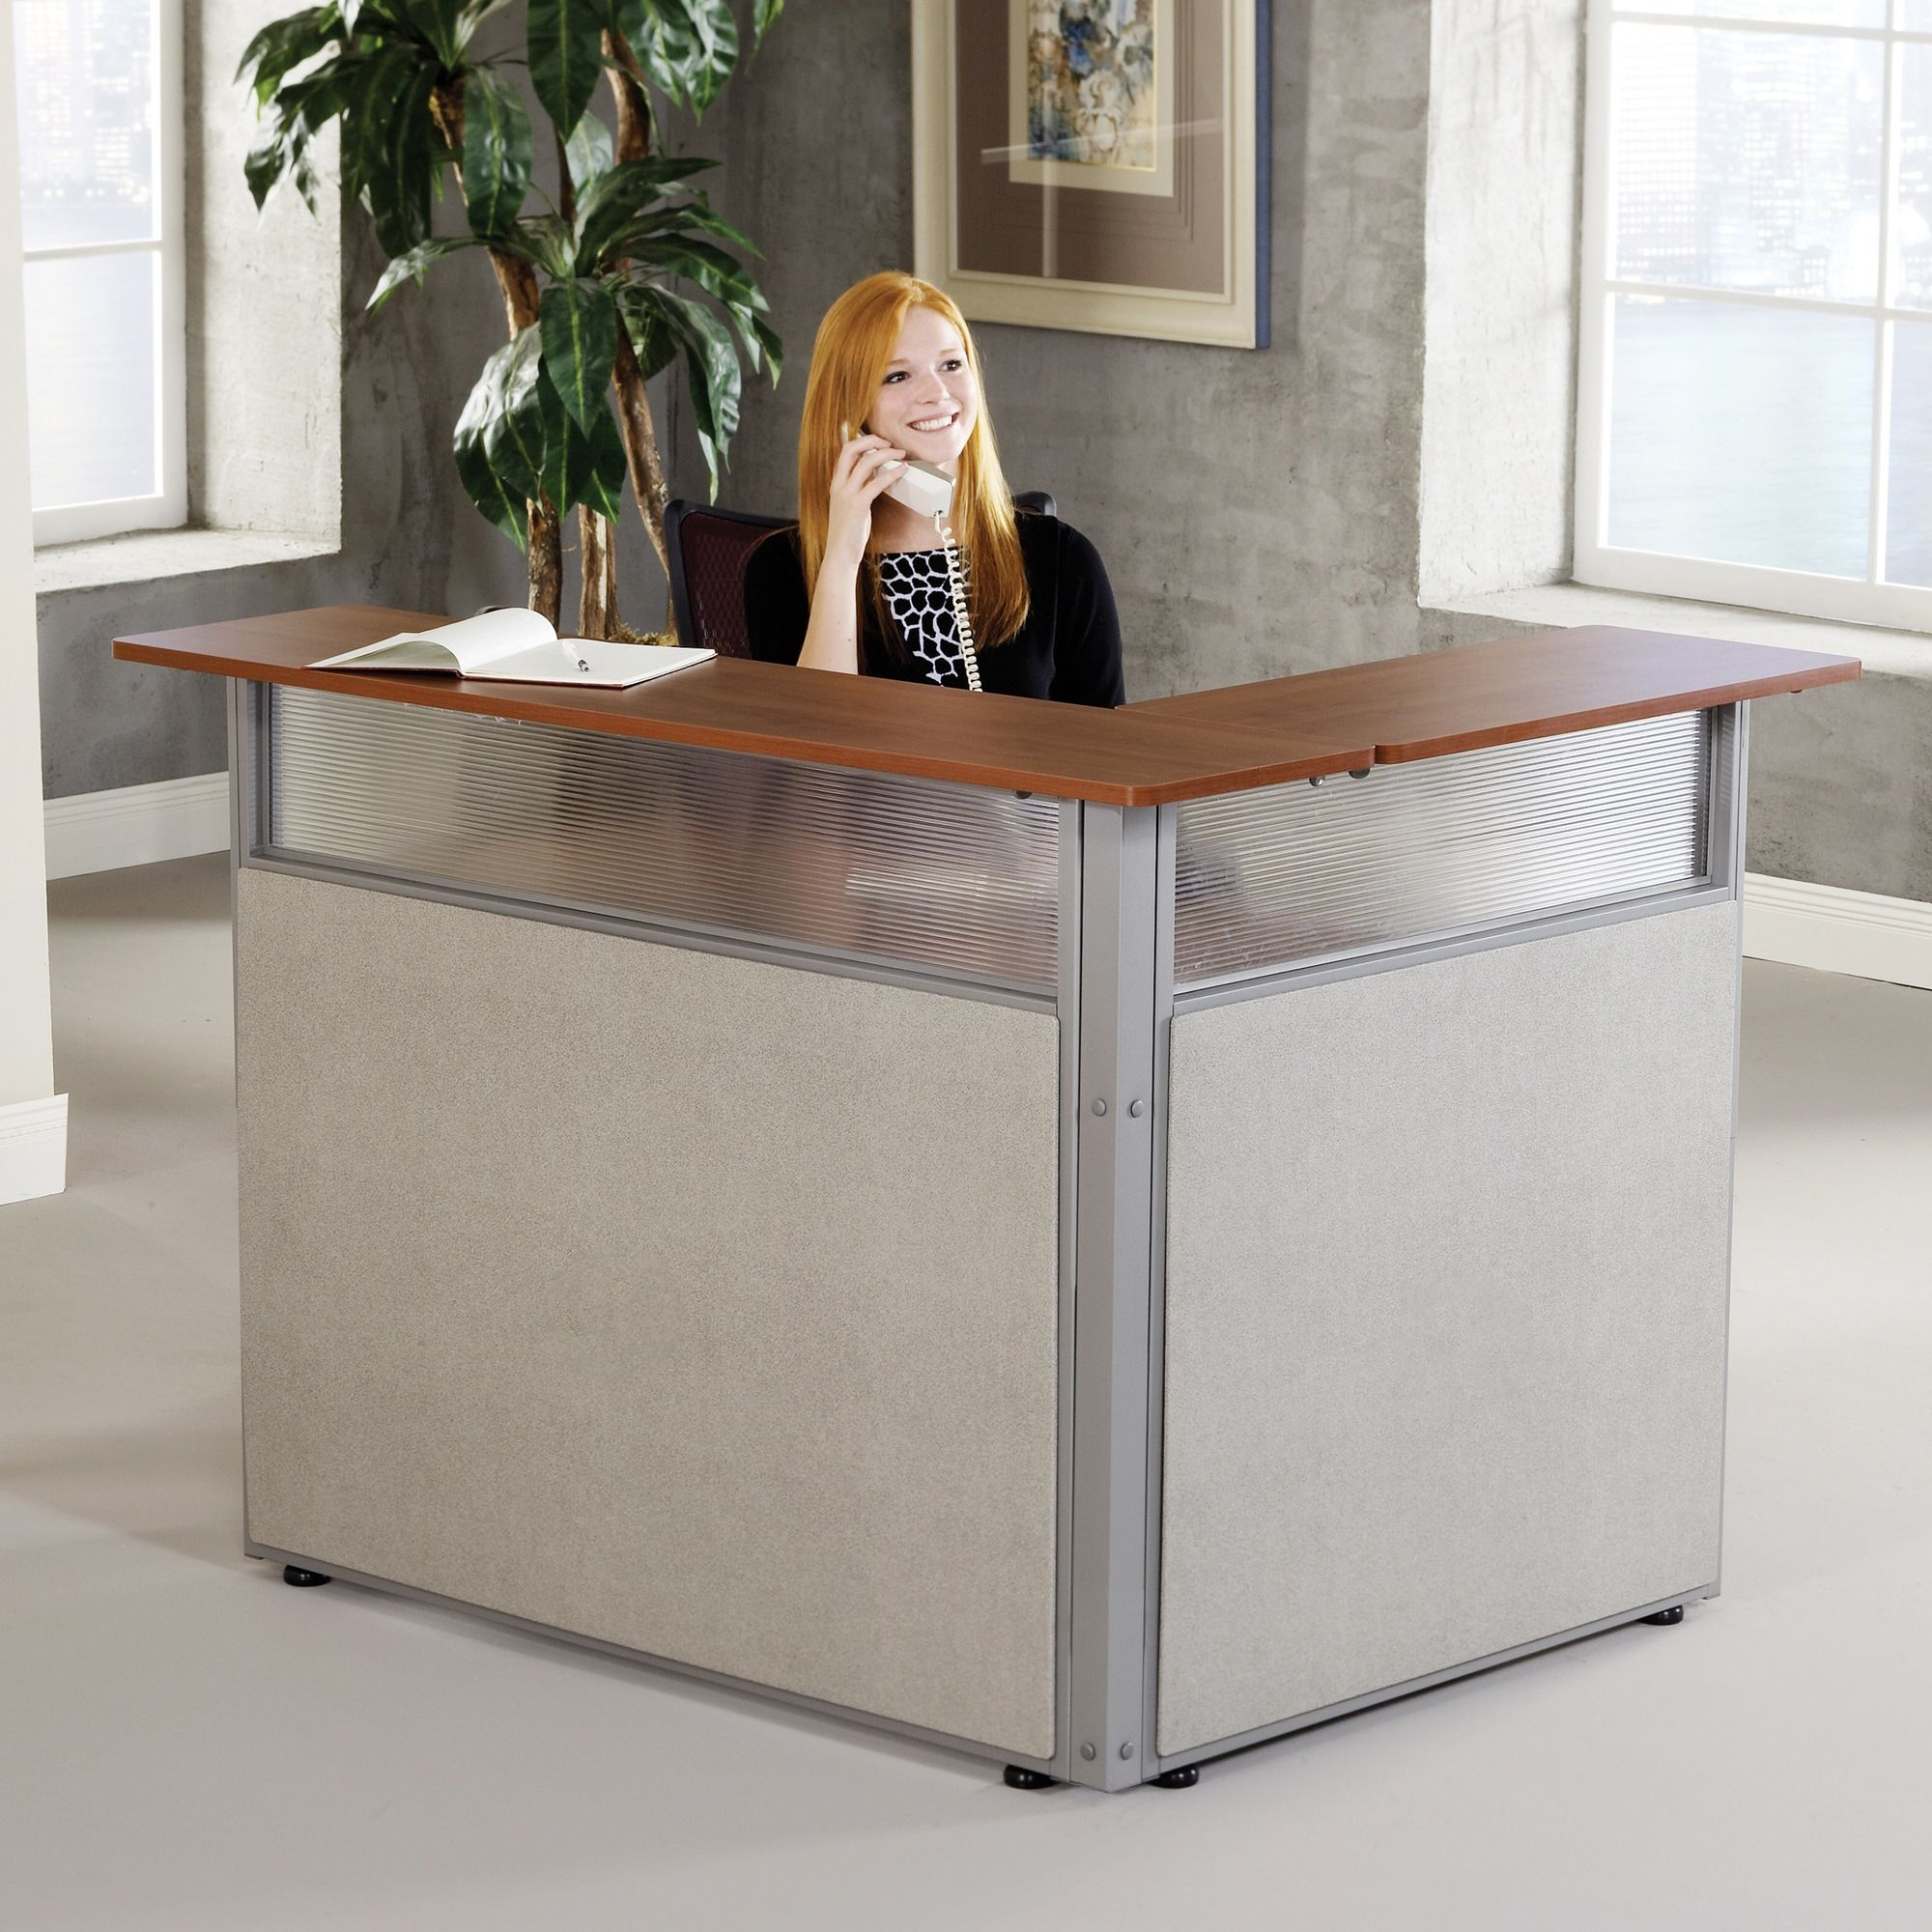 Ofm Scratch Resistant L Shaped Reception Desk Ping The Best Deals On Desks